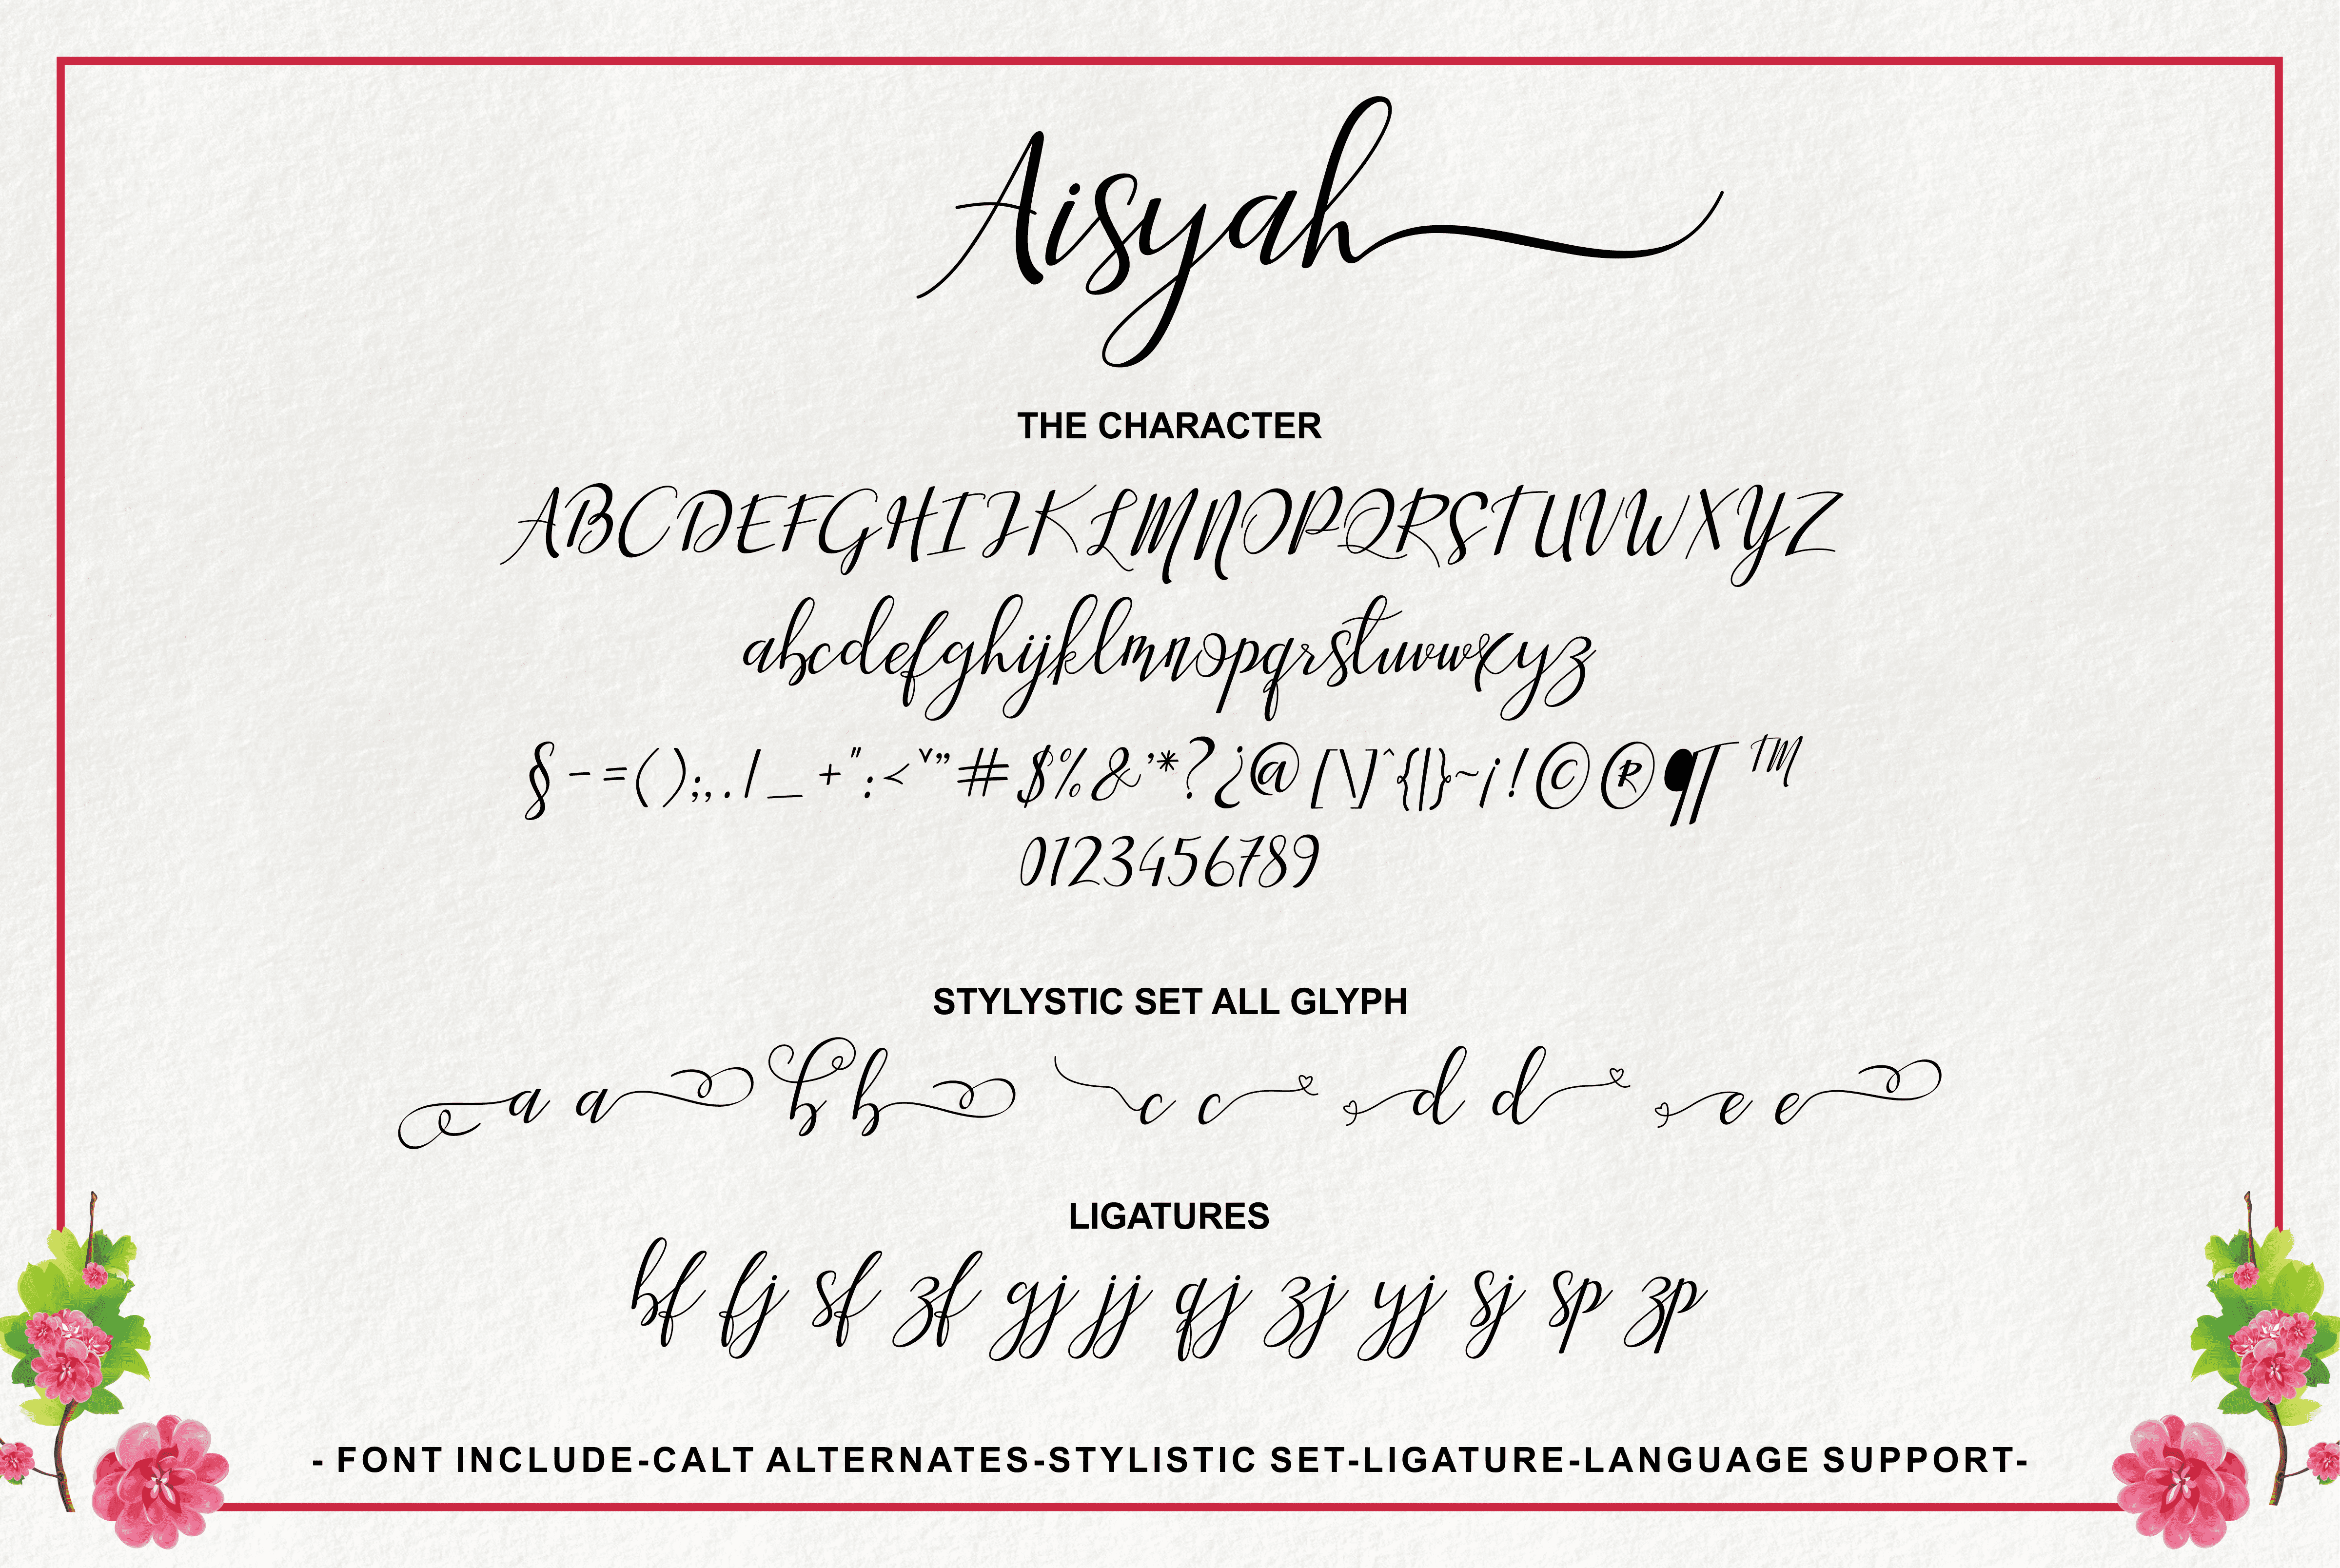 95+ Best Hand Lettering Fonts (Premium and Free) To Type the Most Important Words - Aisyah 8